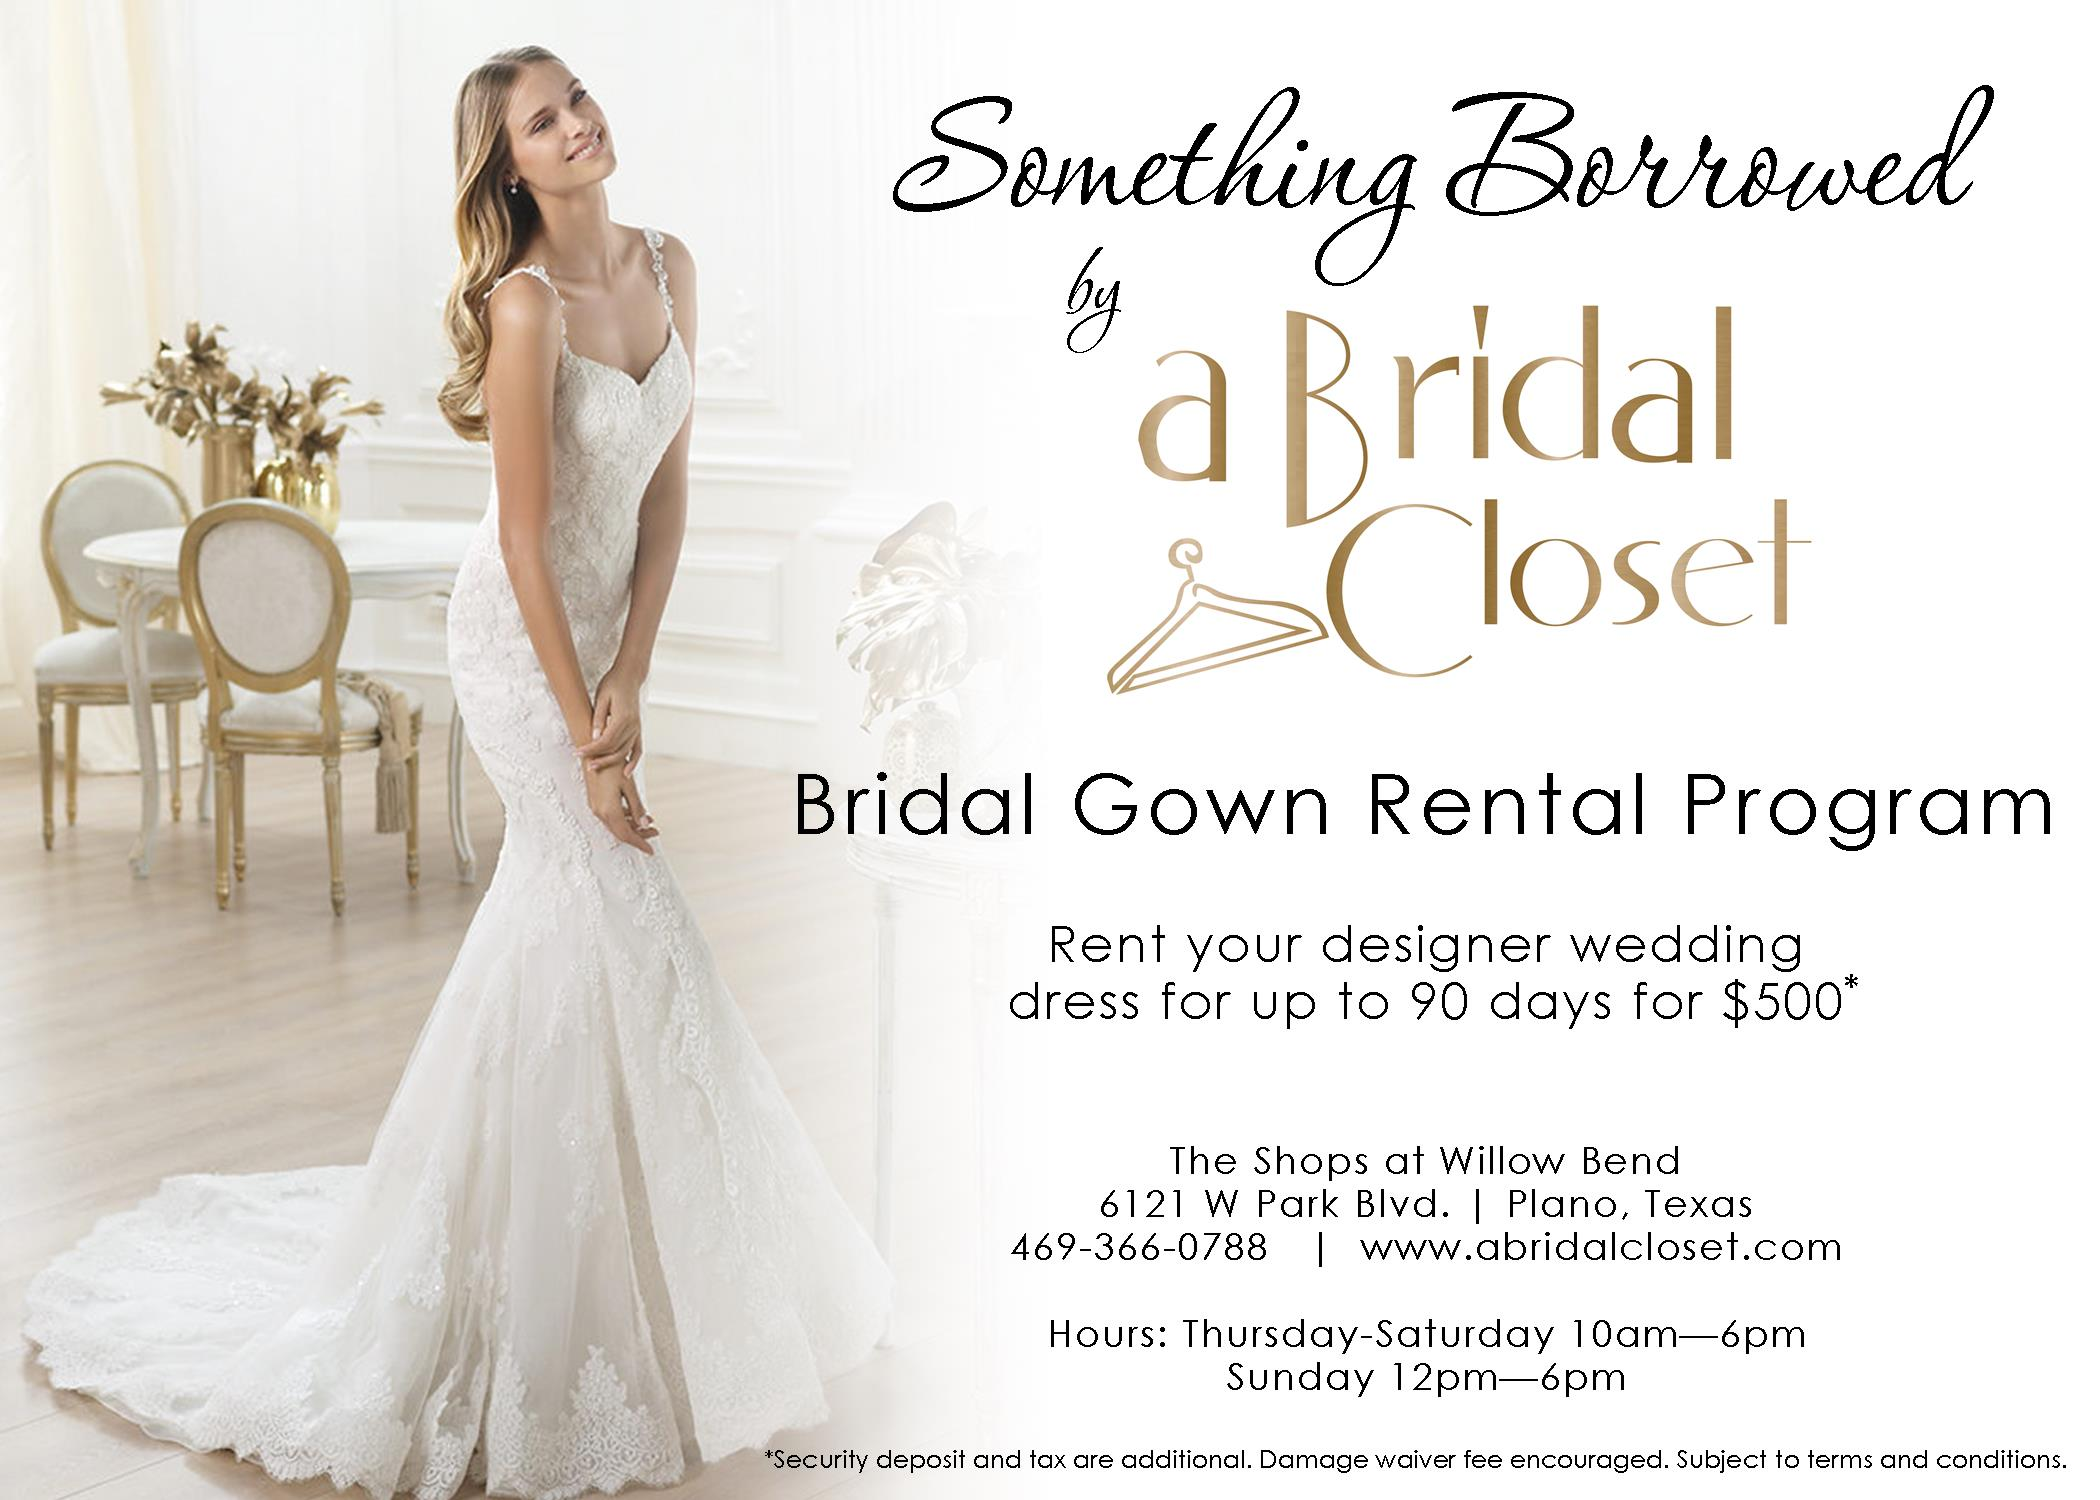 bridal closet wedding dresses for rent CLICK HERE TO LEARN MORE ABOUT OUR BRIDAL GOWN RENTAL PROGRAM